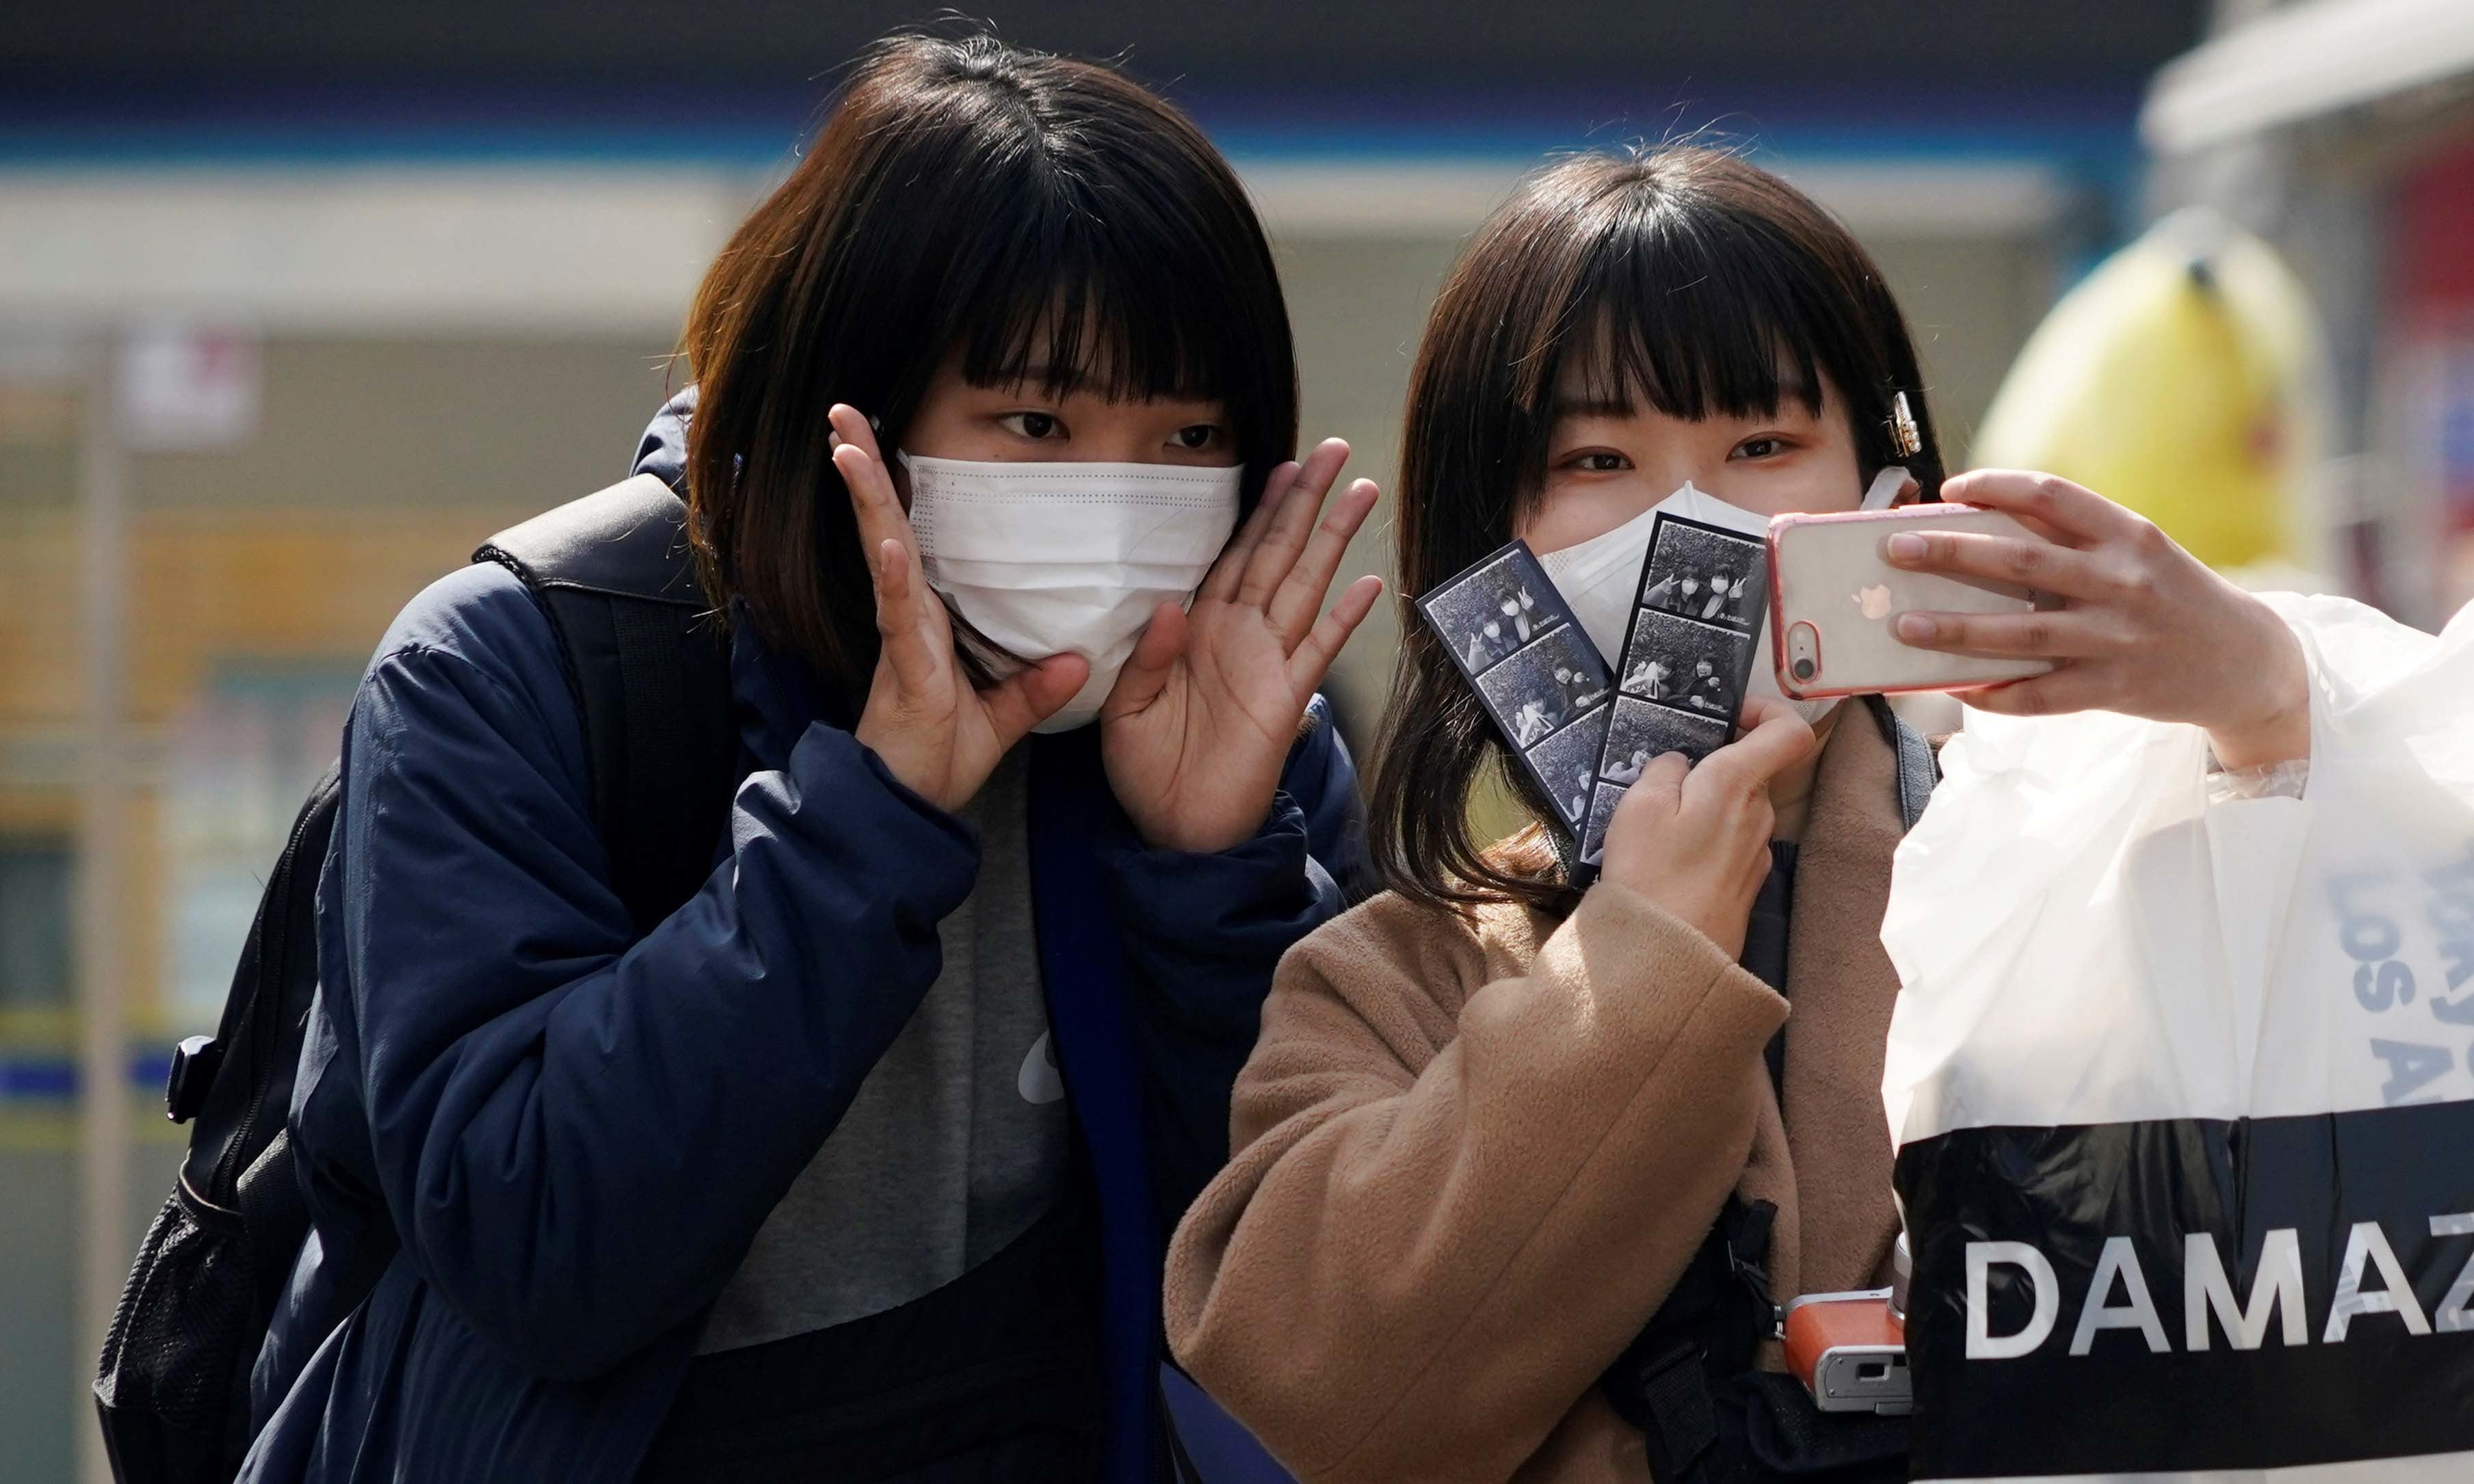 Tourists wearing masks to prevent the coronavirus take a selfie at a shopping district in Seoul, South Korea, February 24. — Reuters